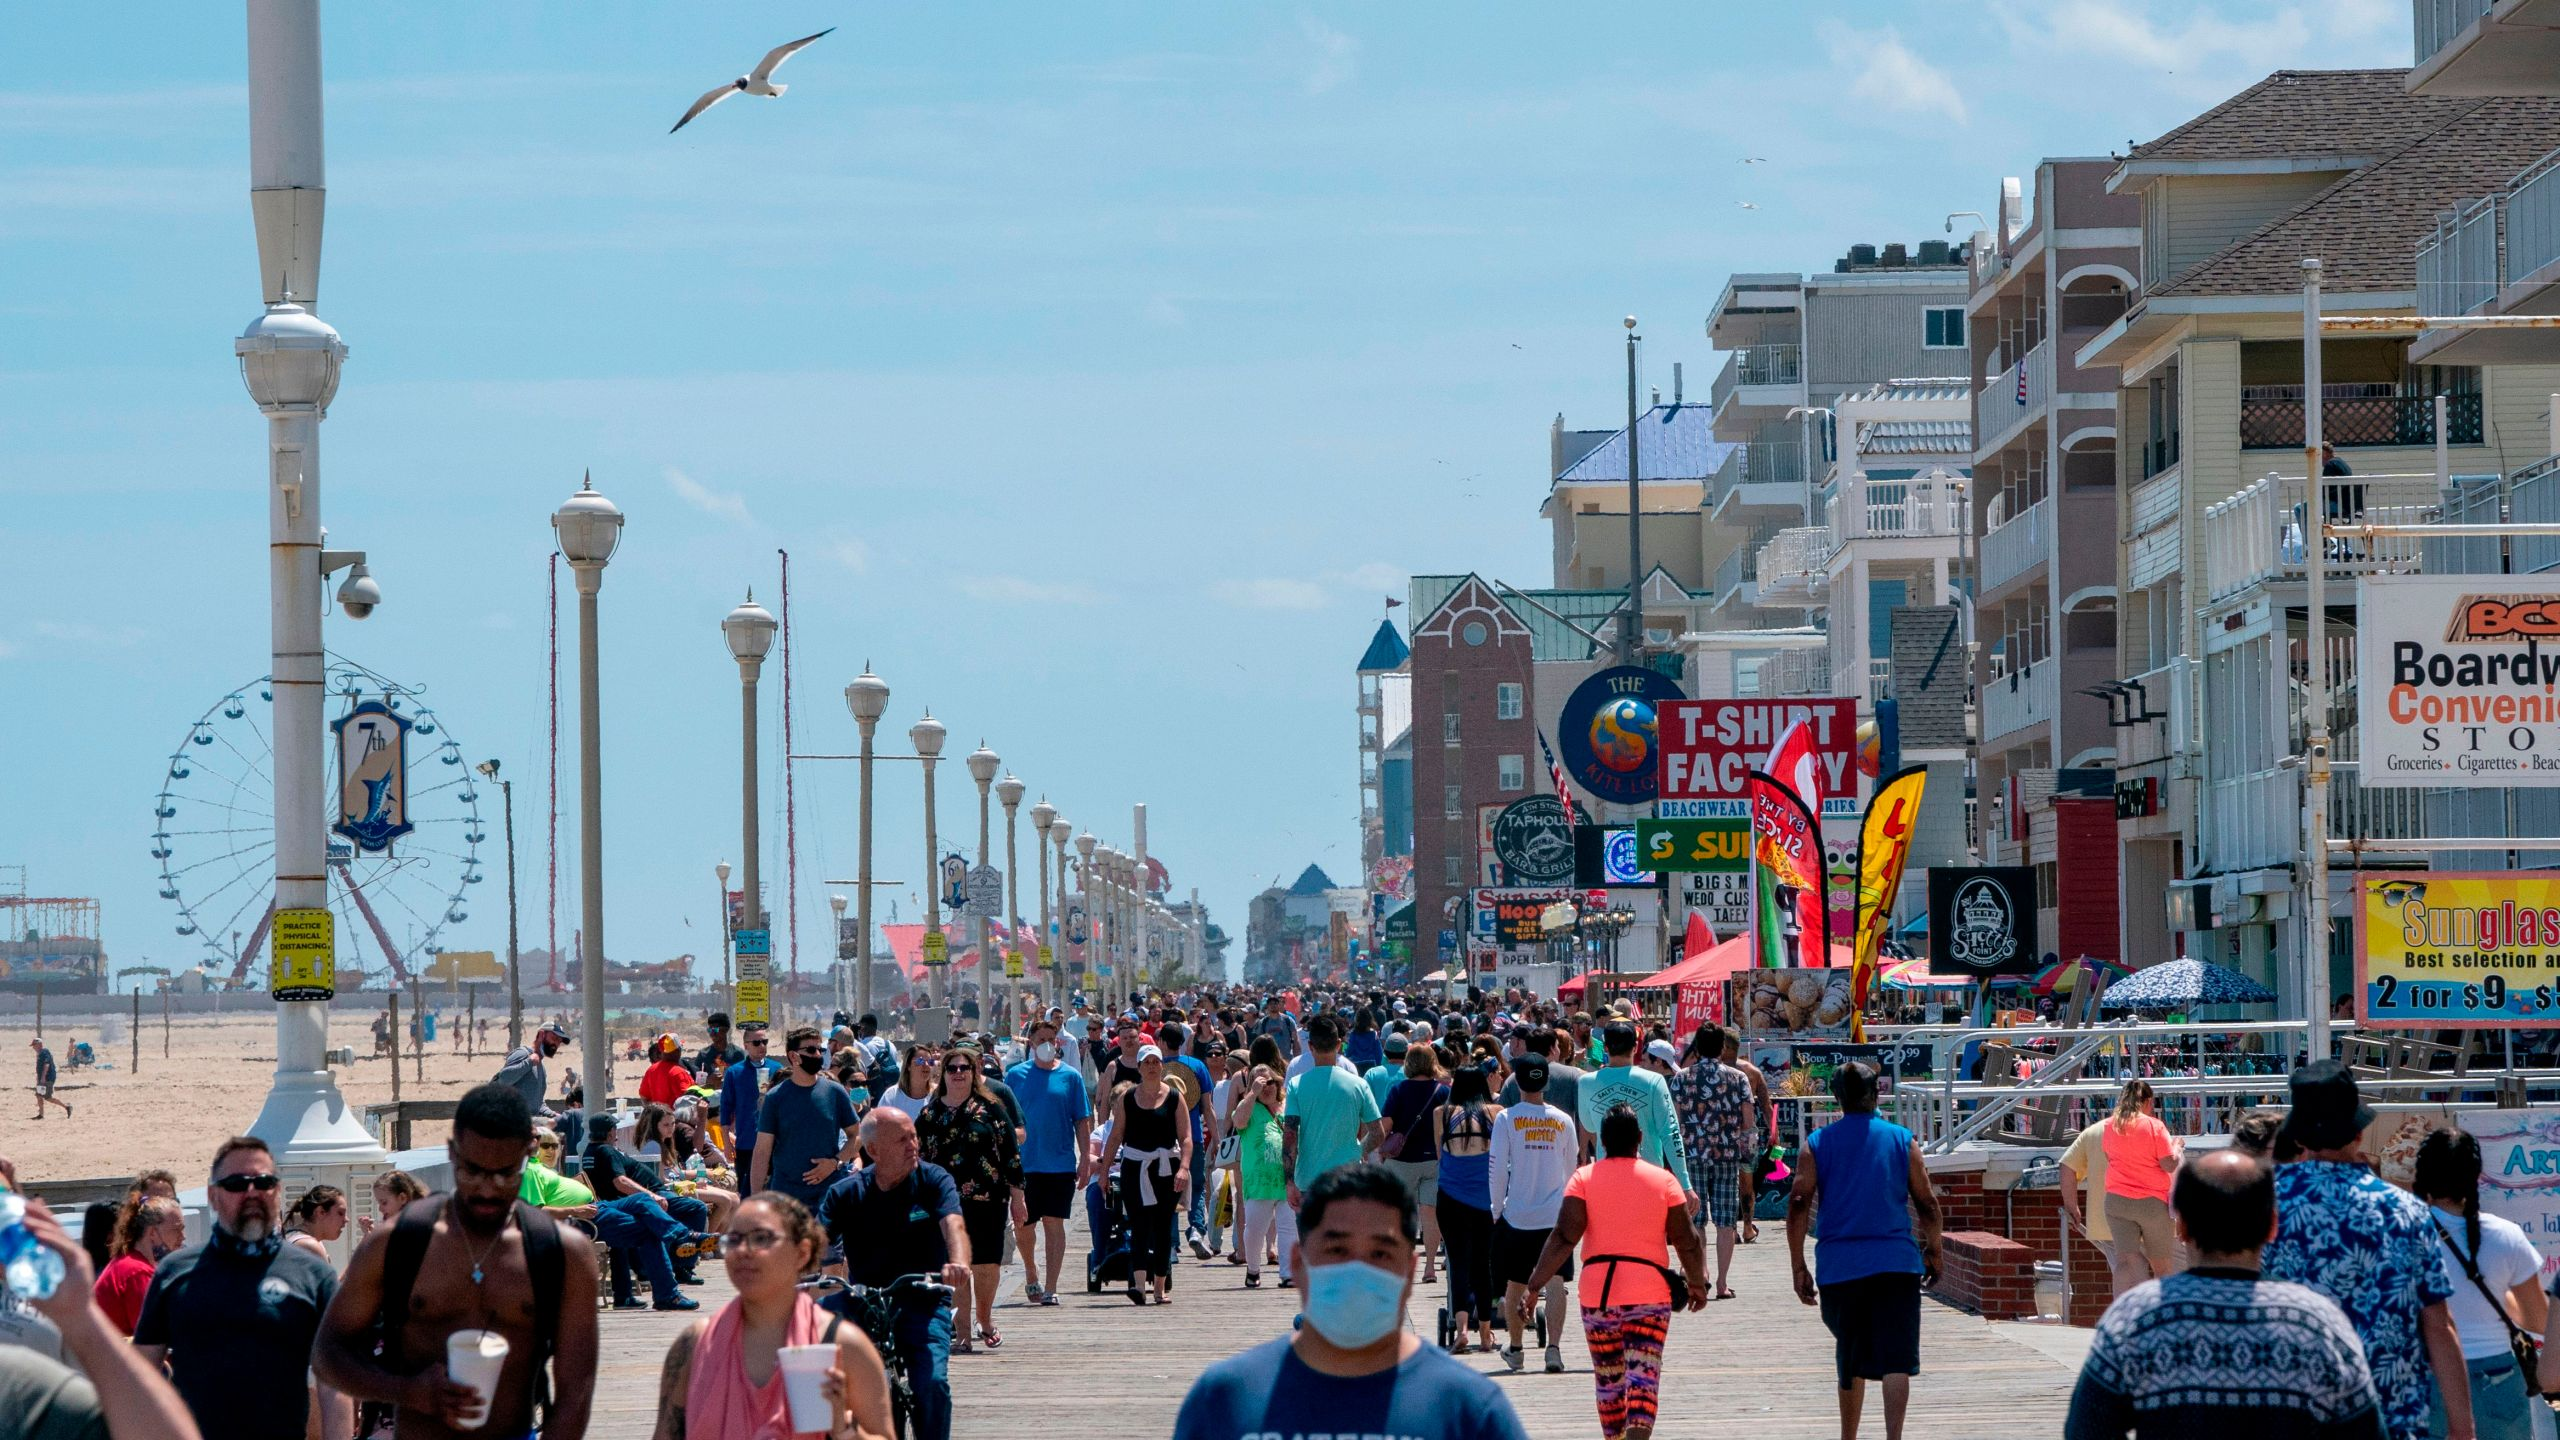 People enjoy the boardwalk during the Memorial Day holiday weekend amid the coronavirus pandemic on May 23, 2020 in Ocean City, Maryland. (ALEX EDELMAN/AFP via Getty Images)